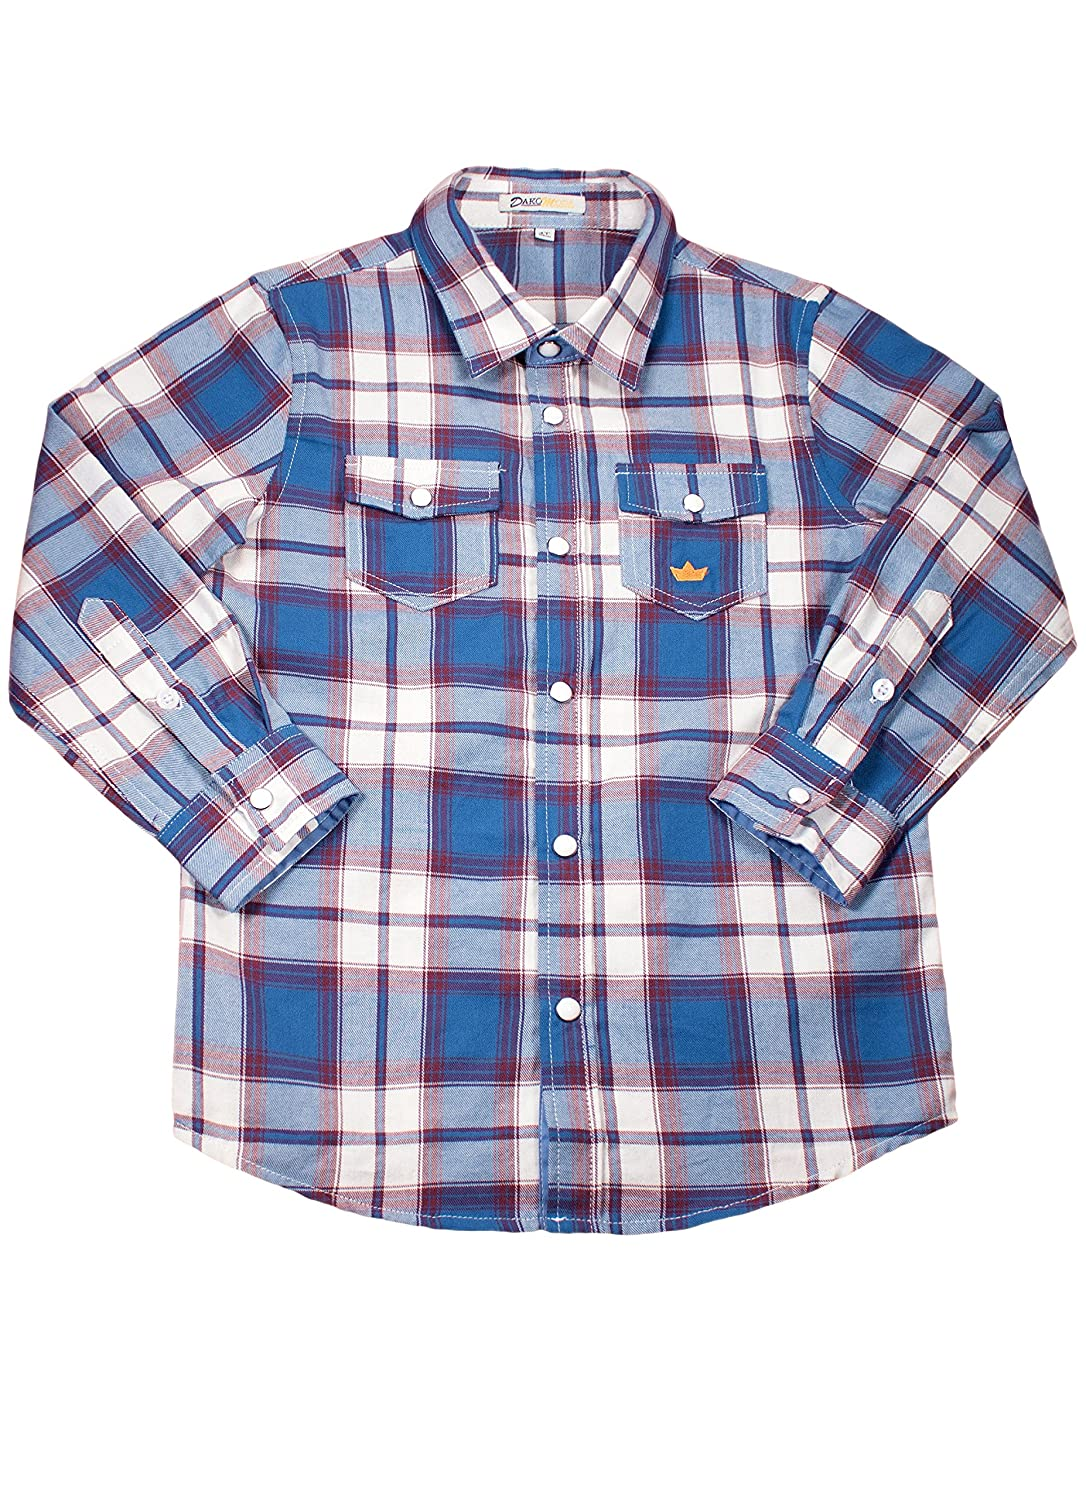 Roll Up Sleeve Snap Top Toddler Boys 100/% Cotton Blue Western Plaid Shirt